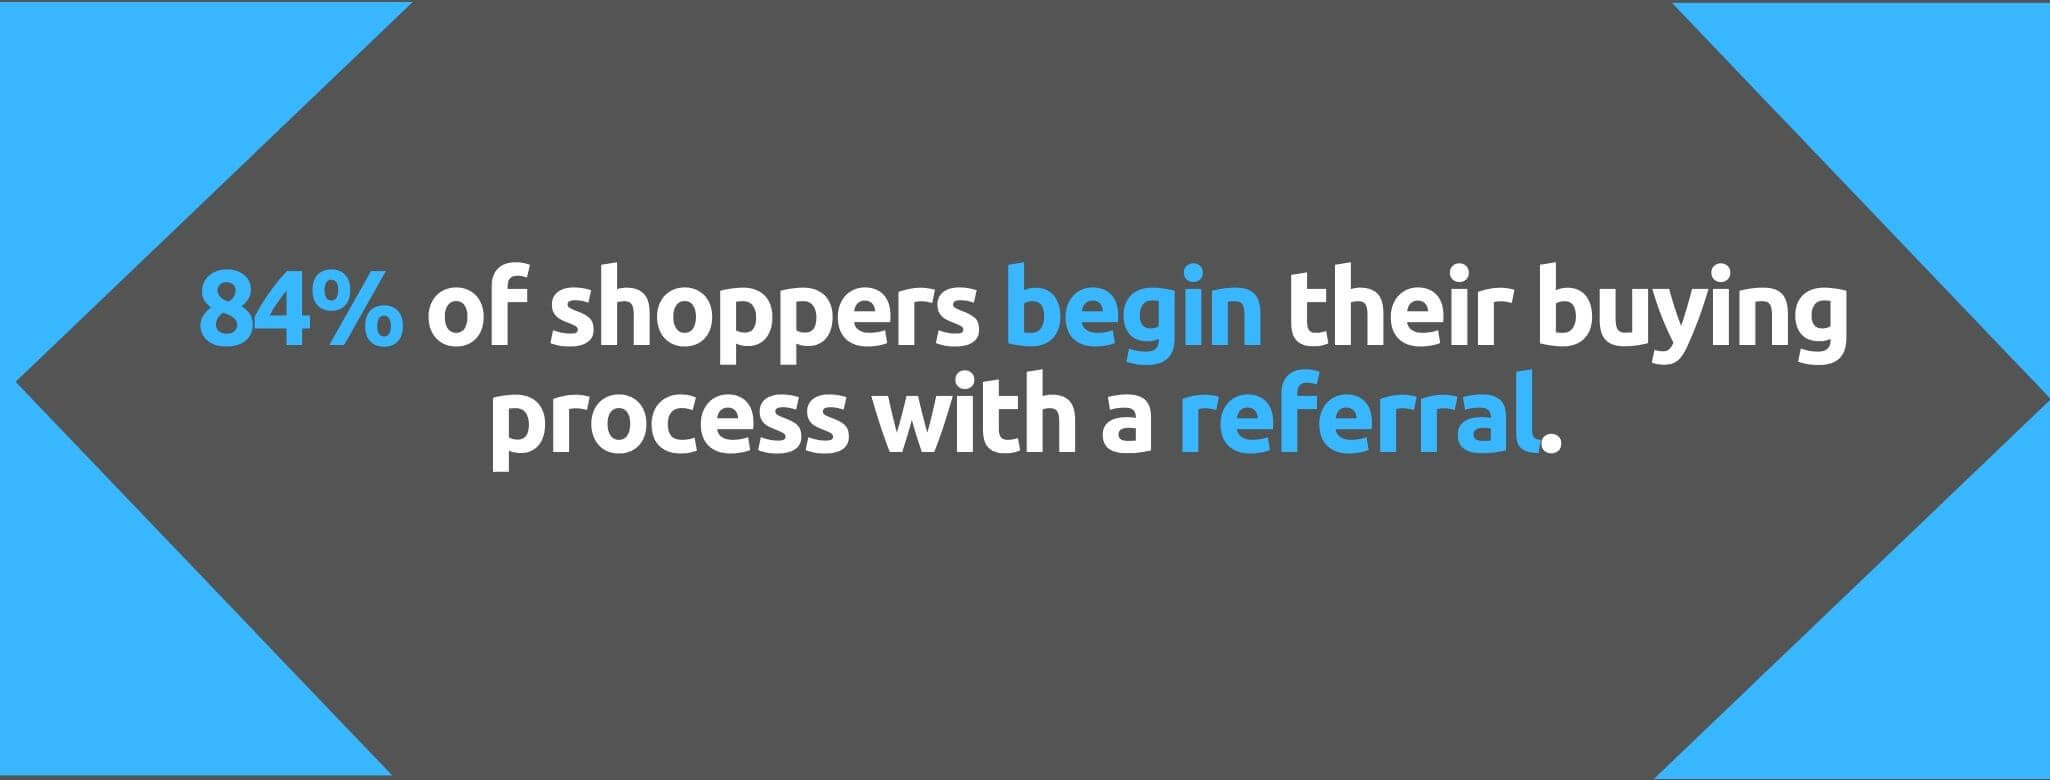 84% of shoppers begin their buying process with a referral - 91 Sales Stats You Can't Afford to Miss - Replyco Helpdesk Software for eCommerce